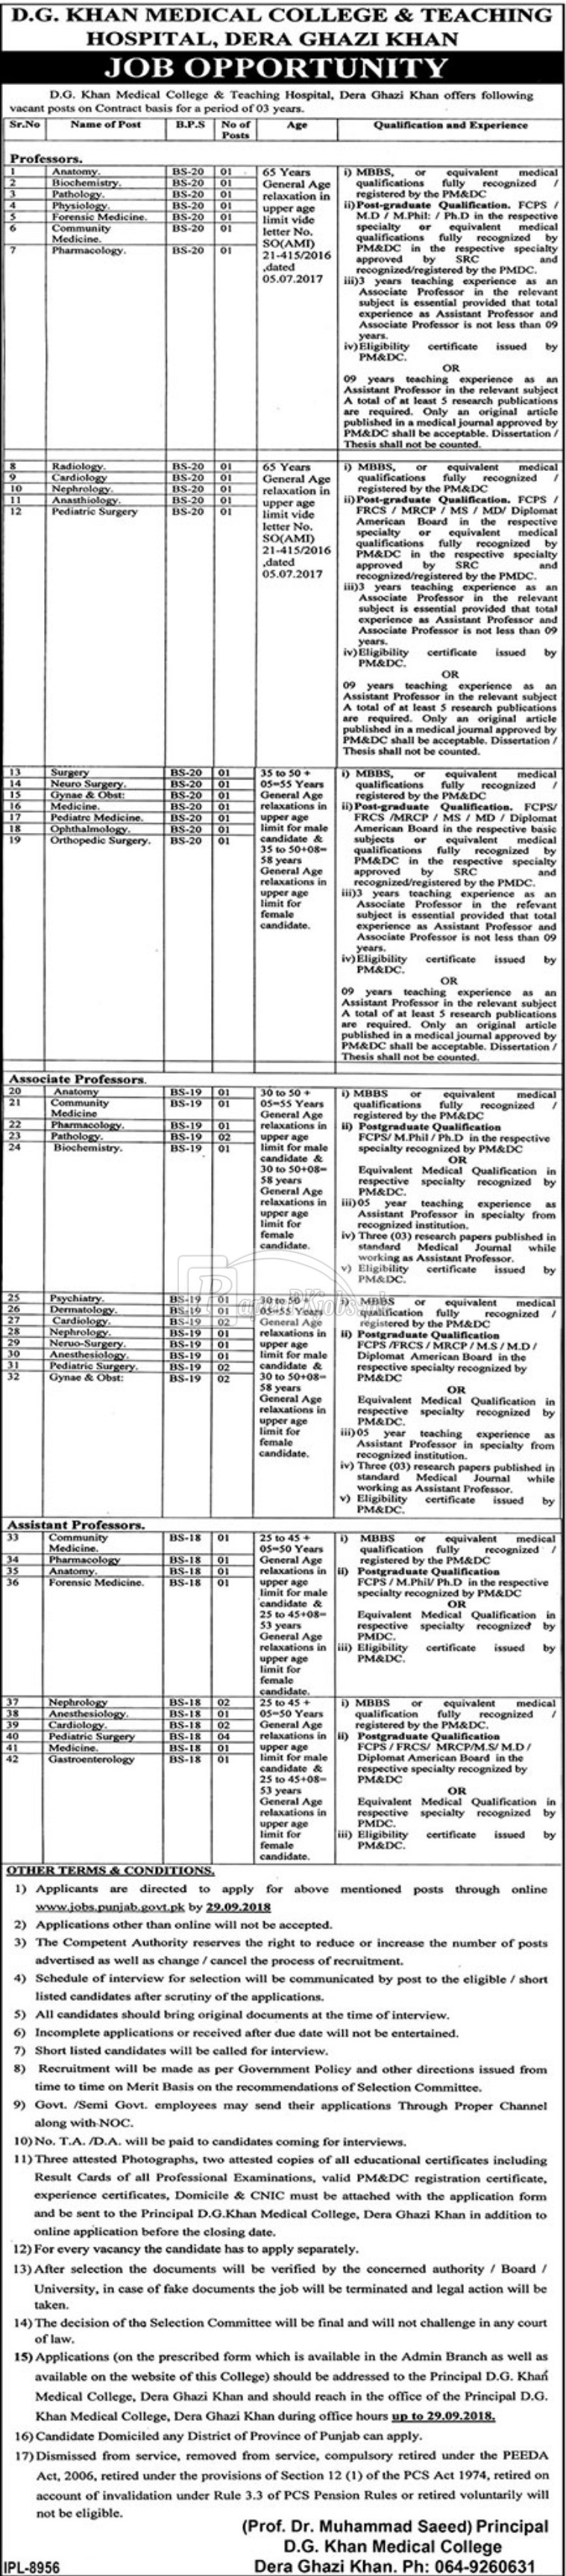 D.G.Khan Medical College & Teaching Hospital Jobs 2018